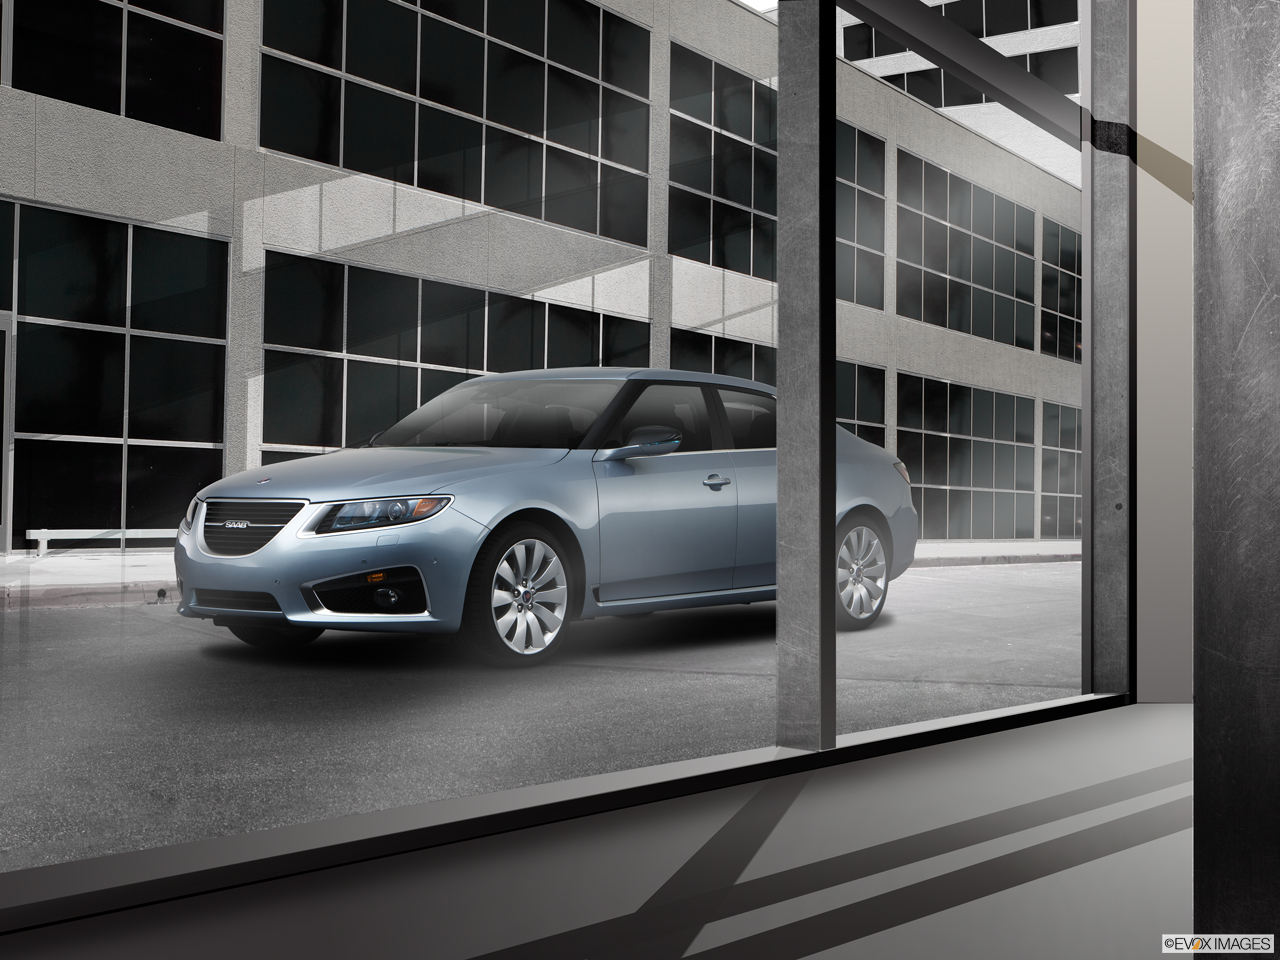 Performance Parts For Acura Tl Theminecraftservercom Best - Acura tl performance parts